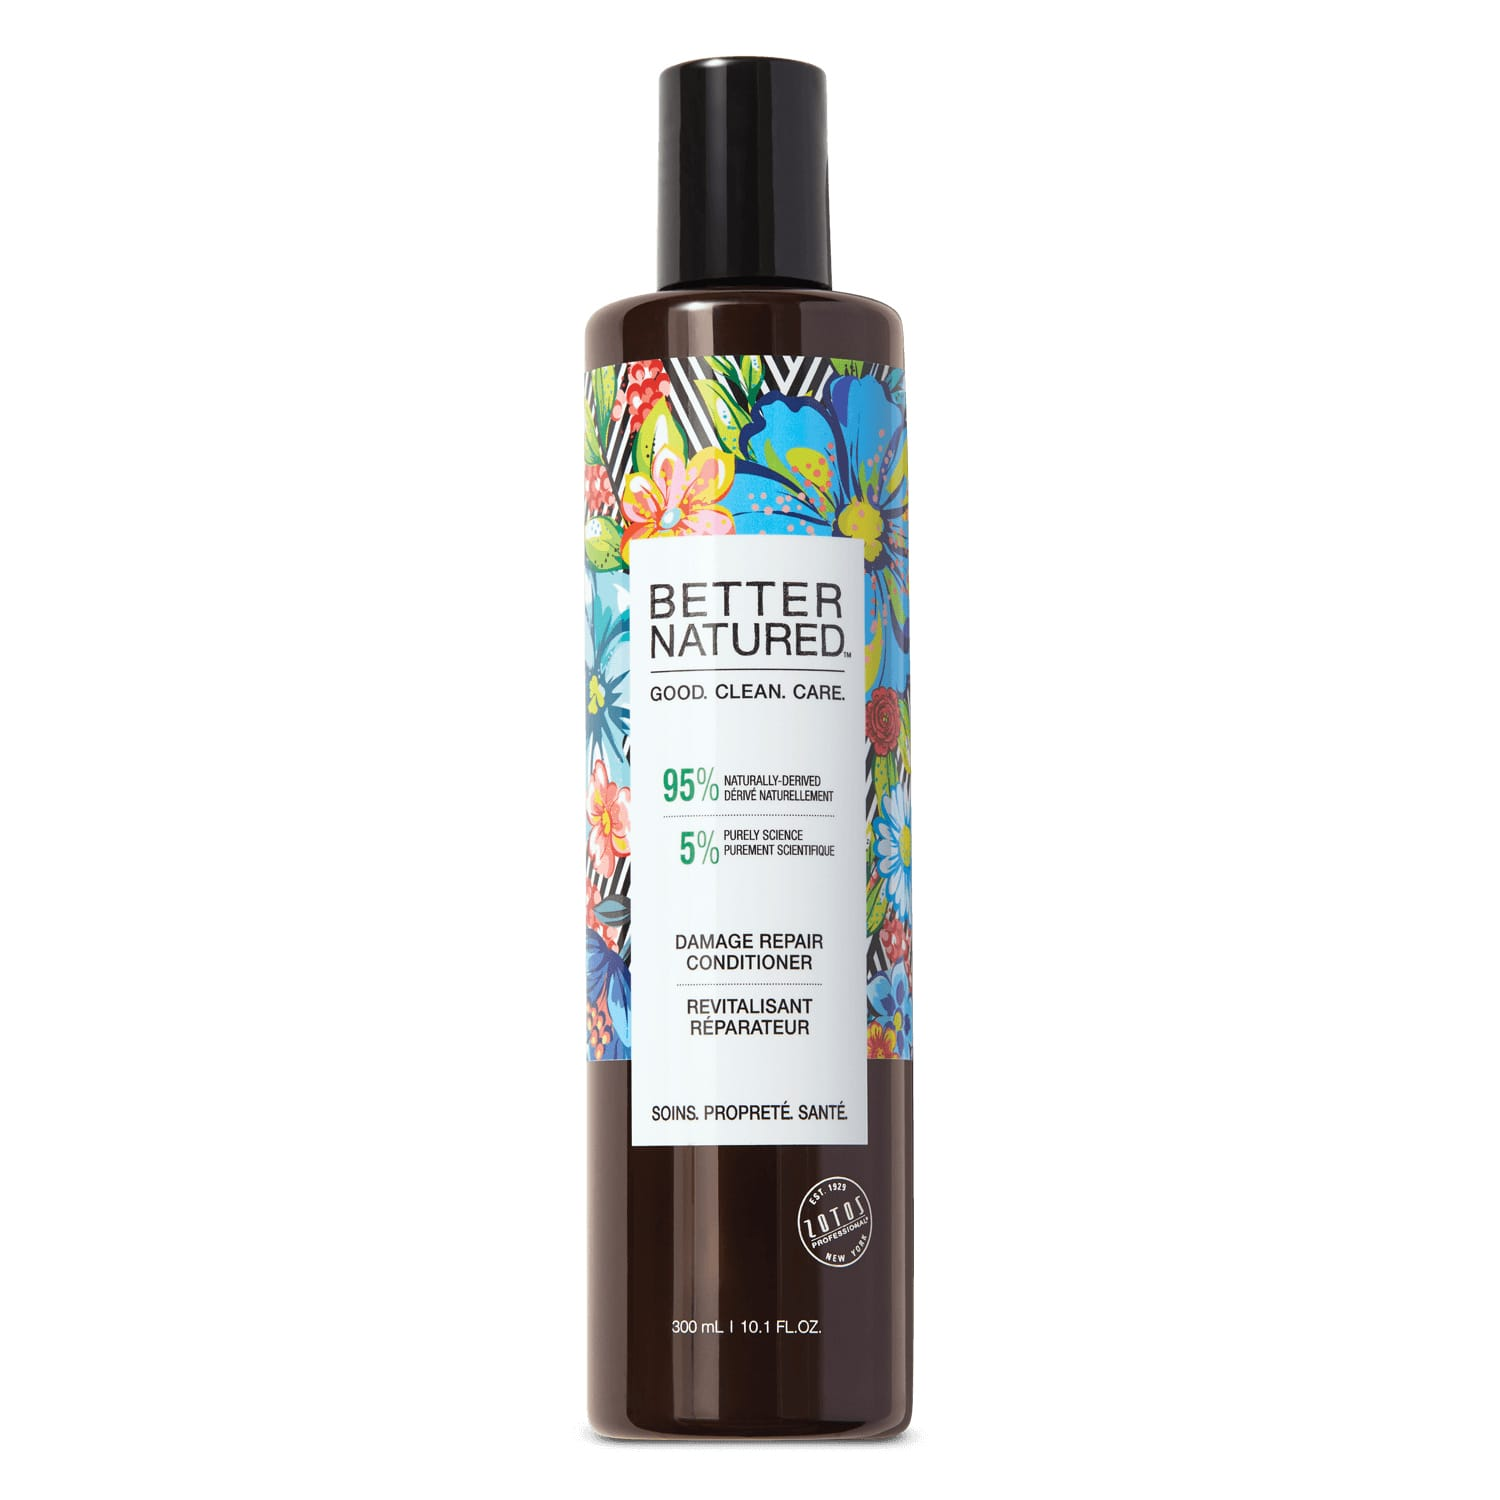 Damage Repair Conditioner